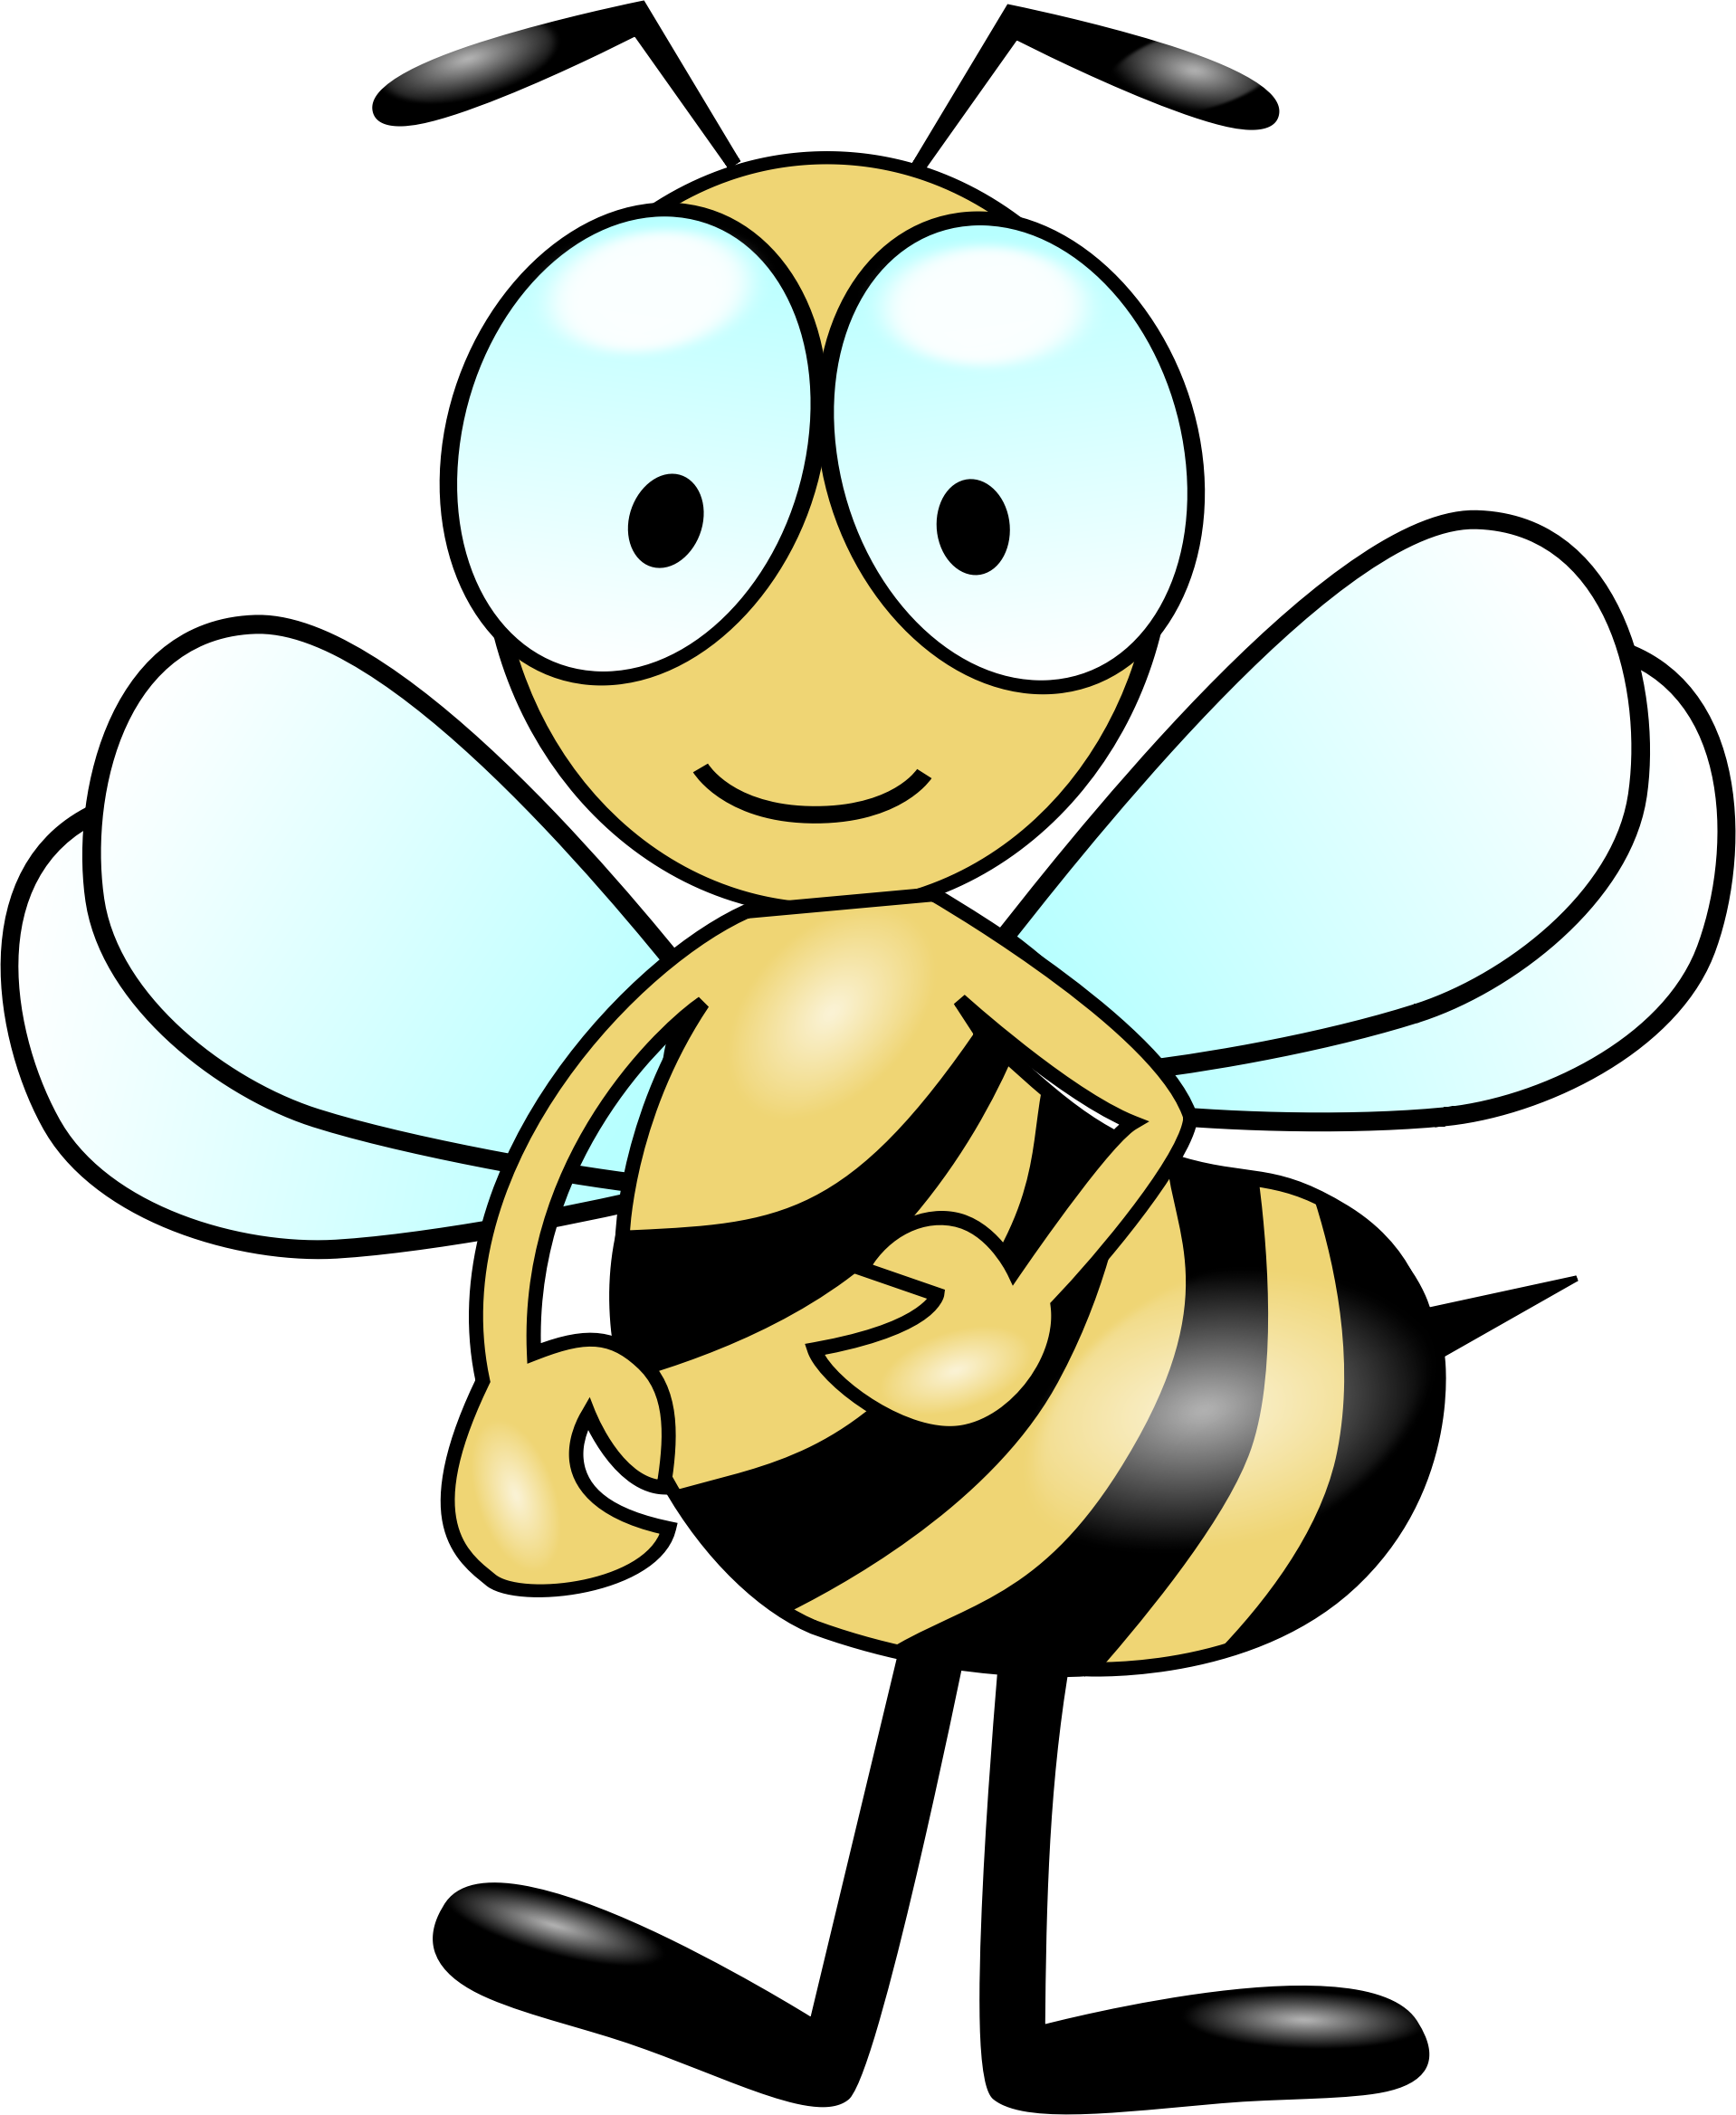 Bee - Bumblebee - Biene - Hummel by forestgreen